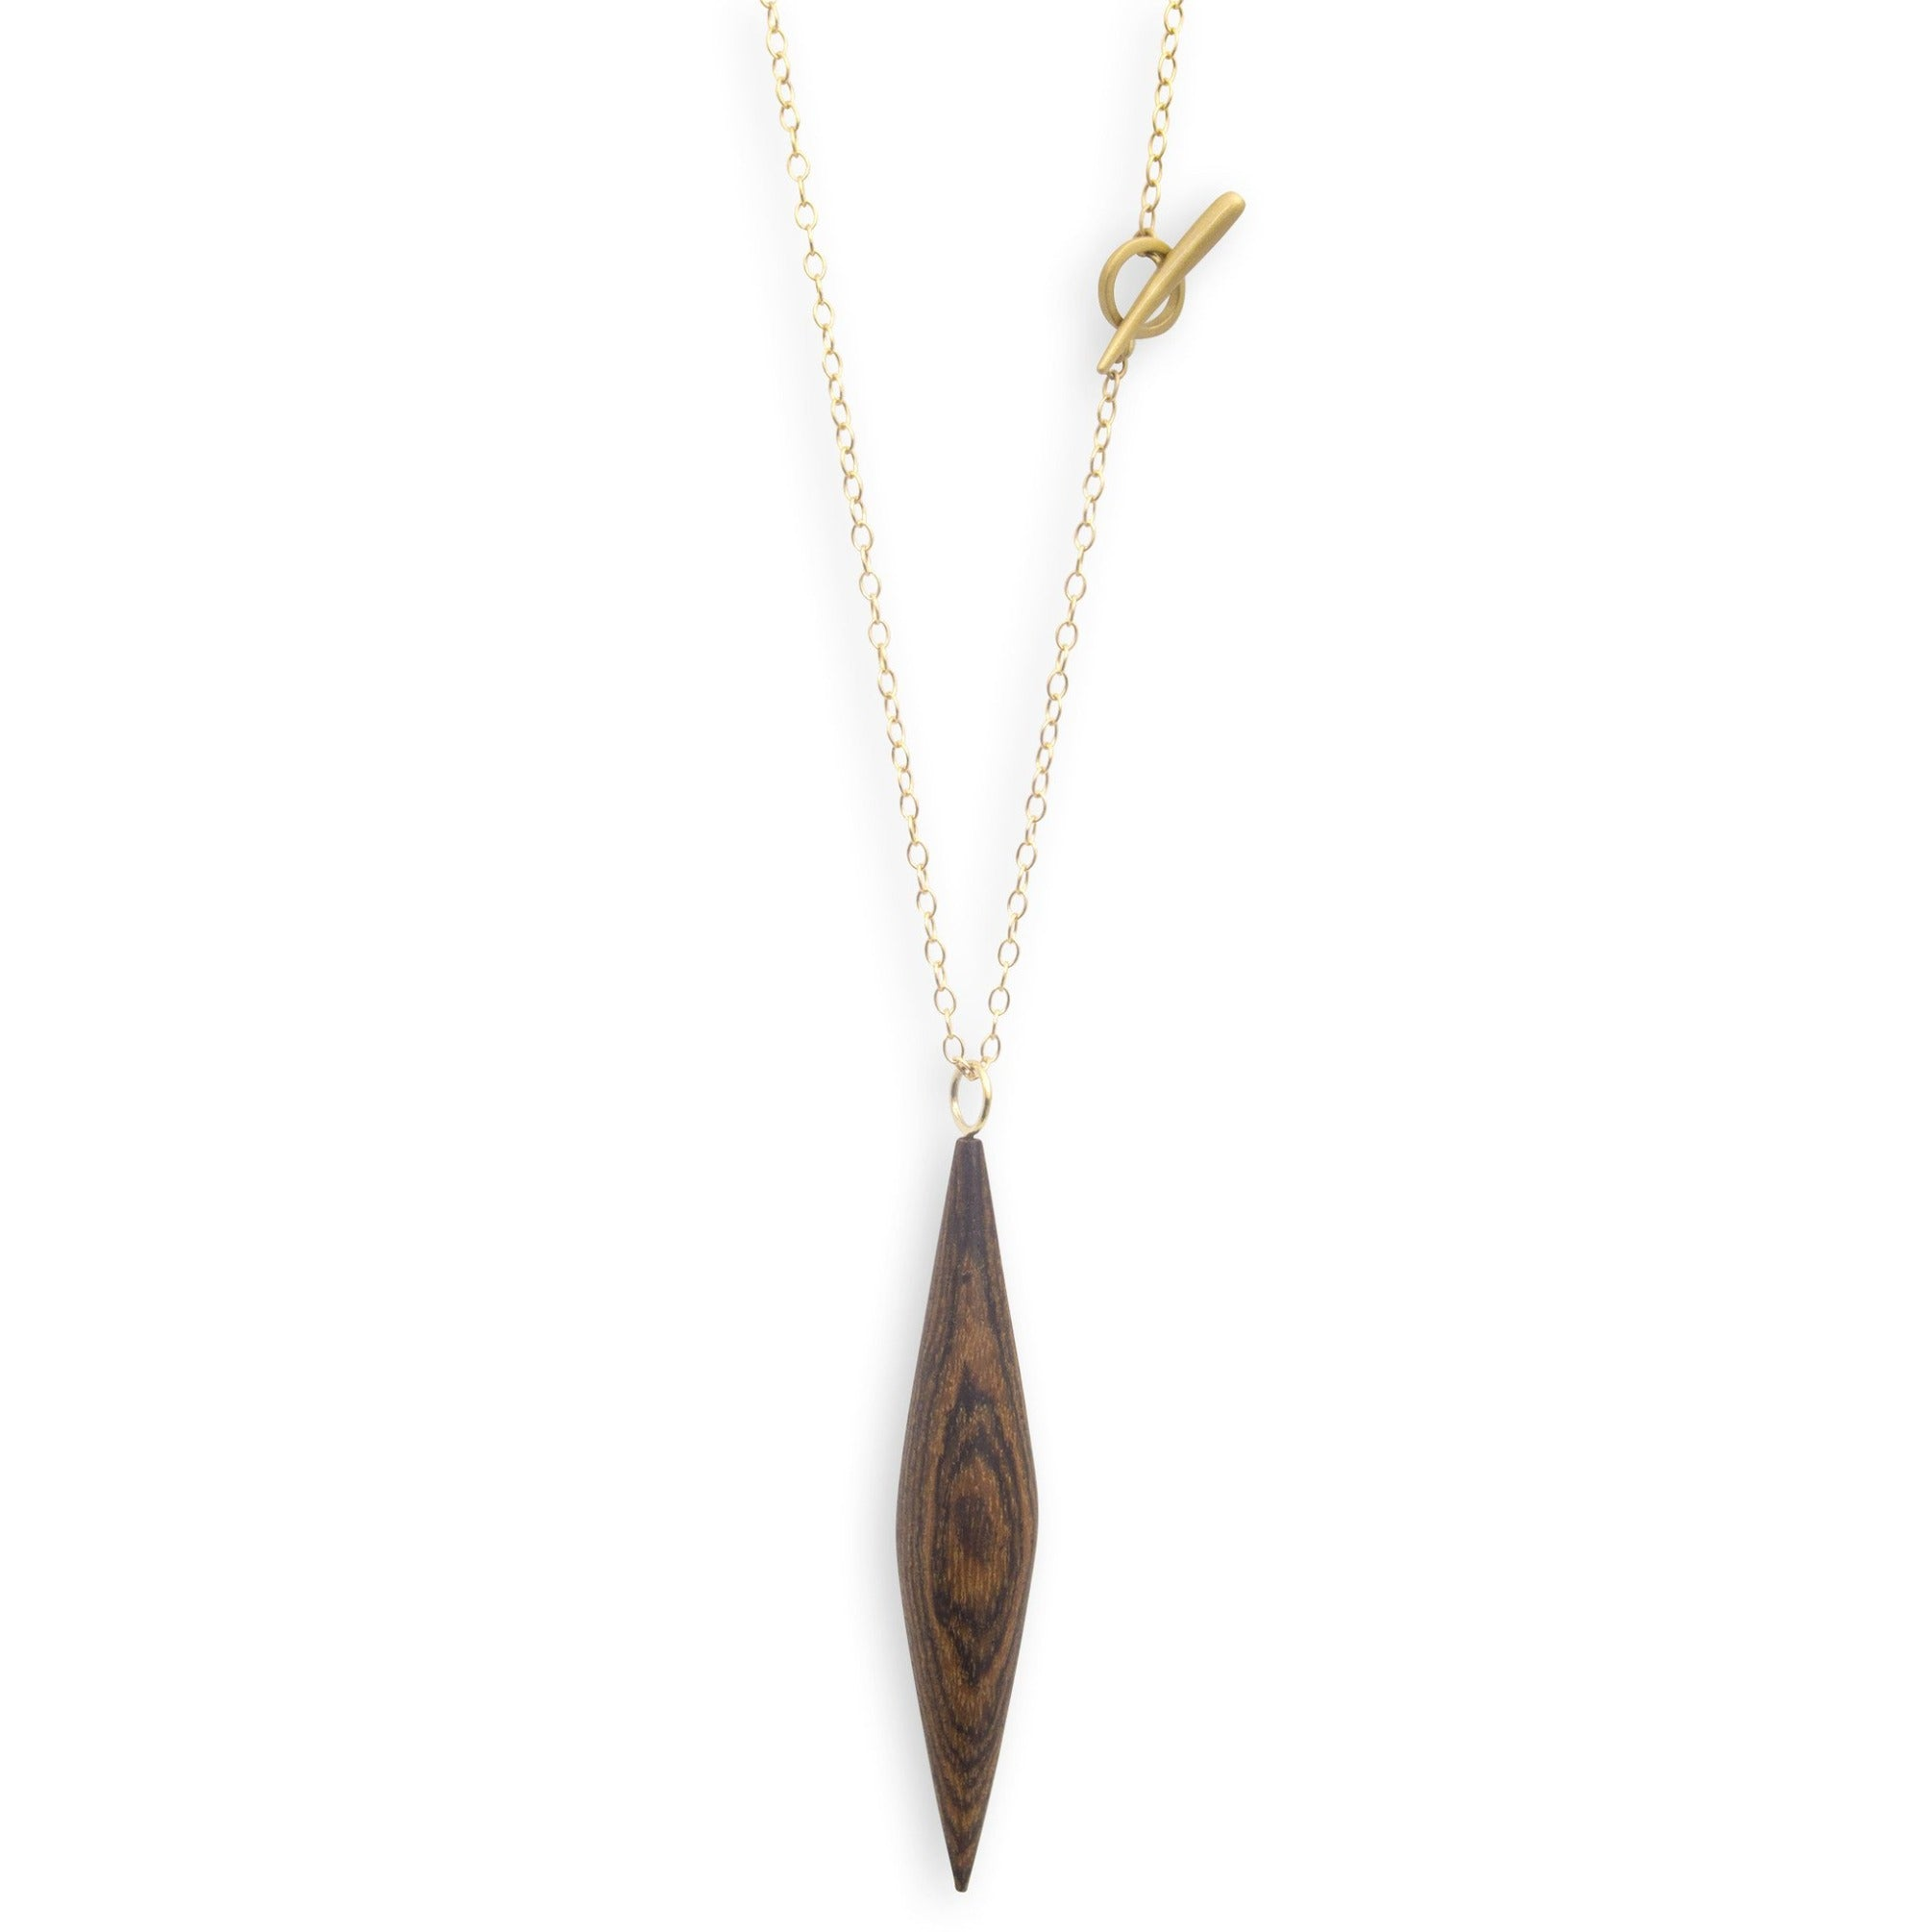 bocote/bronze wood ficelle necklace